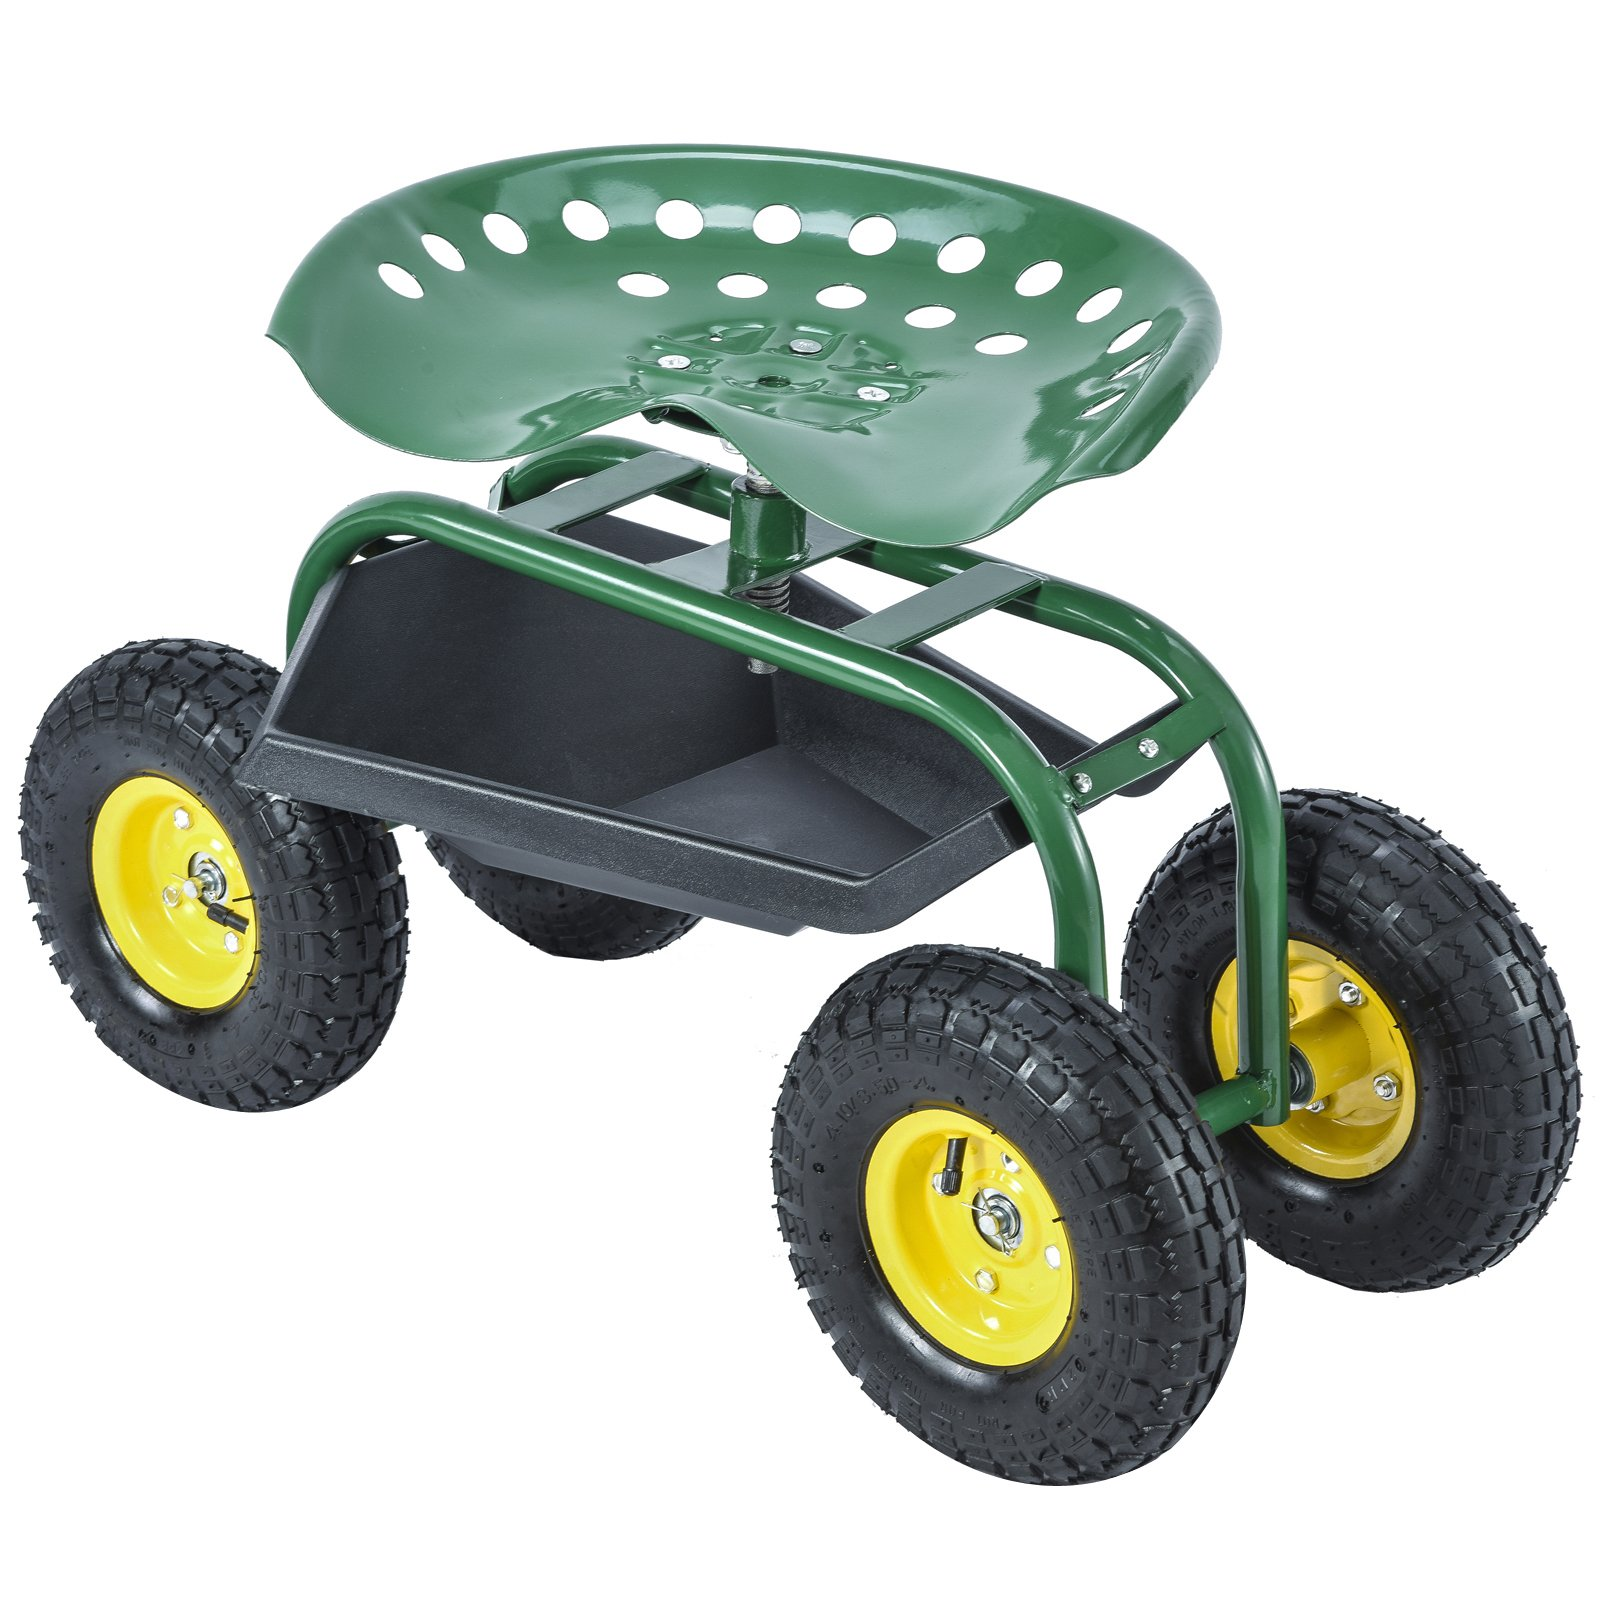 Uenjoy Garden Cart Work Seat with Tool Tray Gardening Wagon Rolling Heavy Duty Cart, 330Ibs Green by Uenjoy